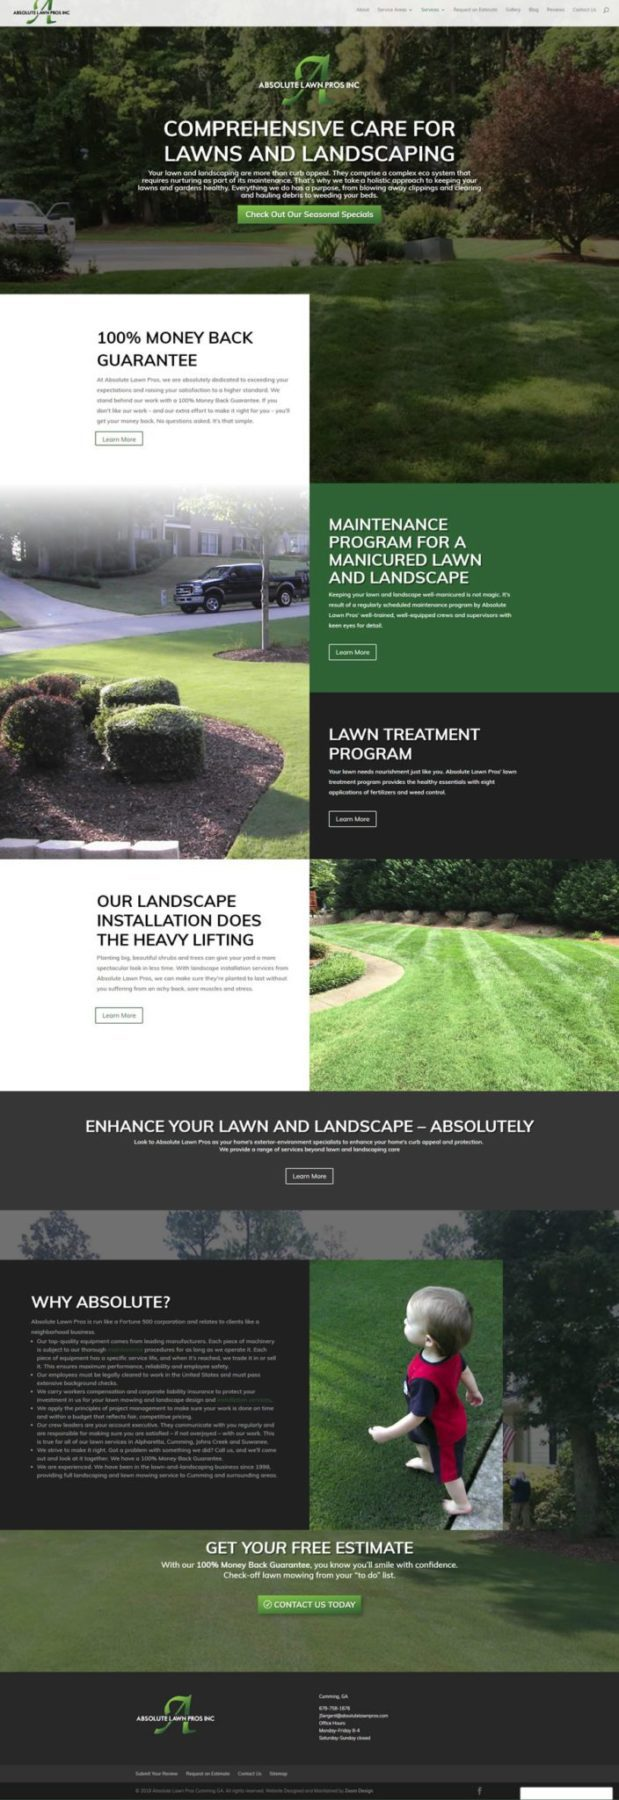 Absolute Lawn Pros - Karla Fouts Designs